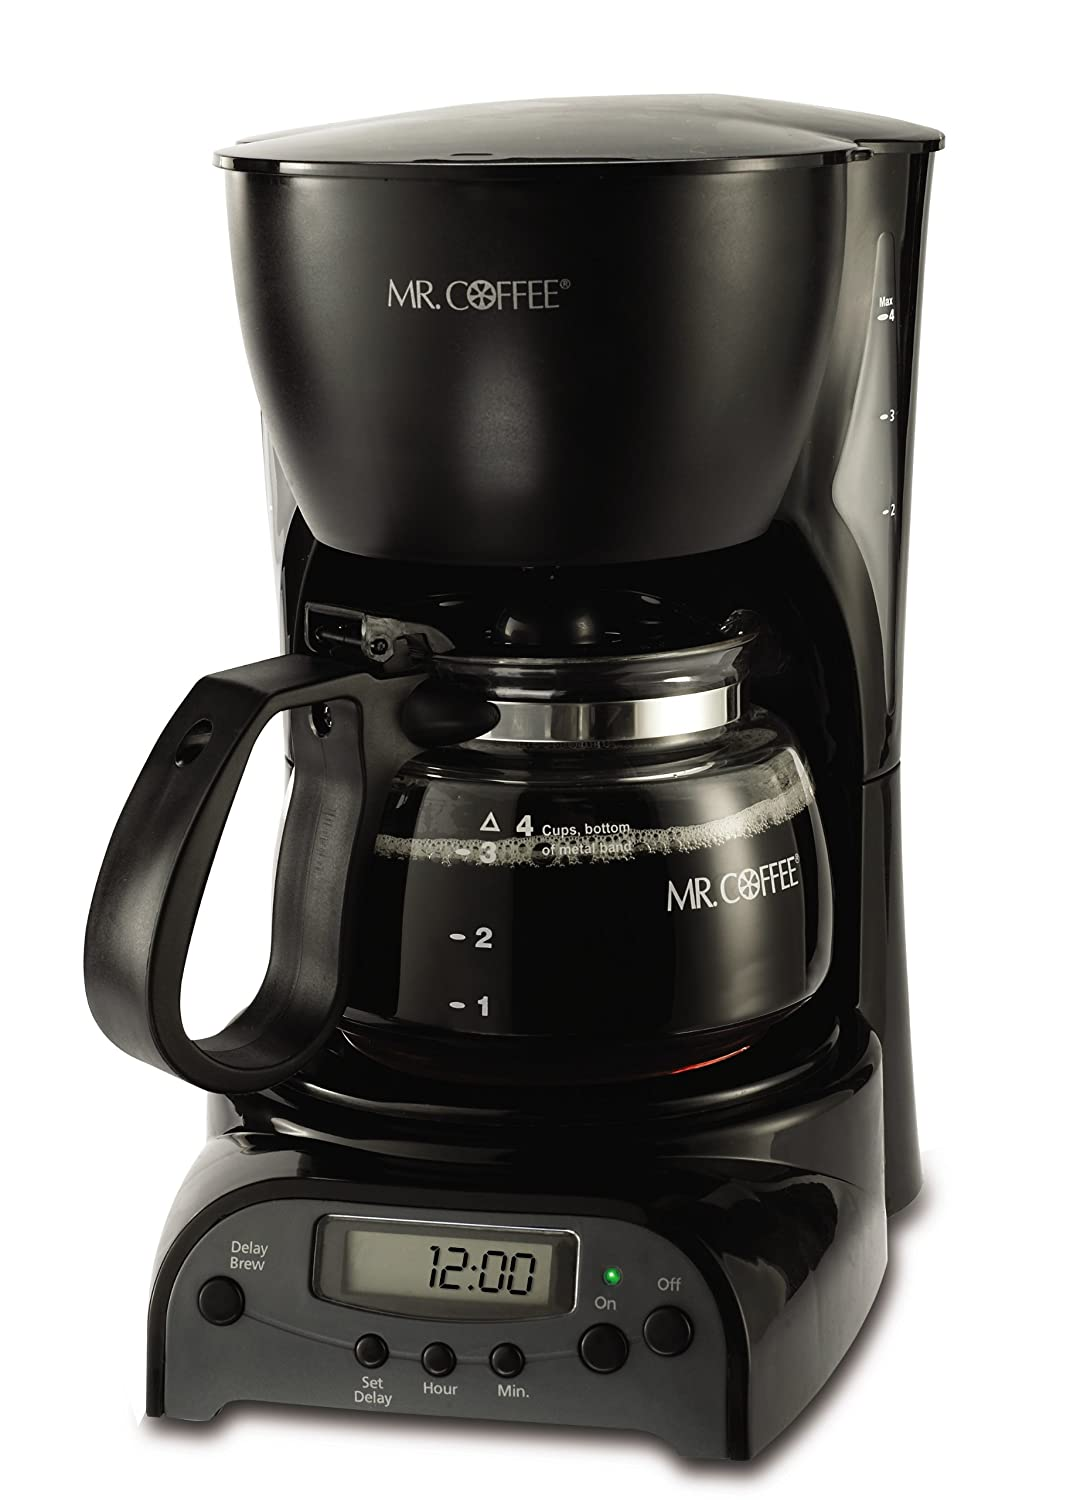 Mr Coffee Drx5 4 Cup Programmable Coffeemaker Coffee Maker